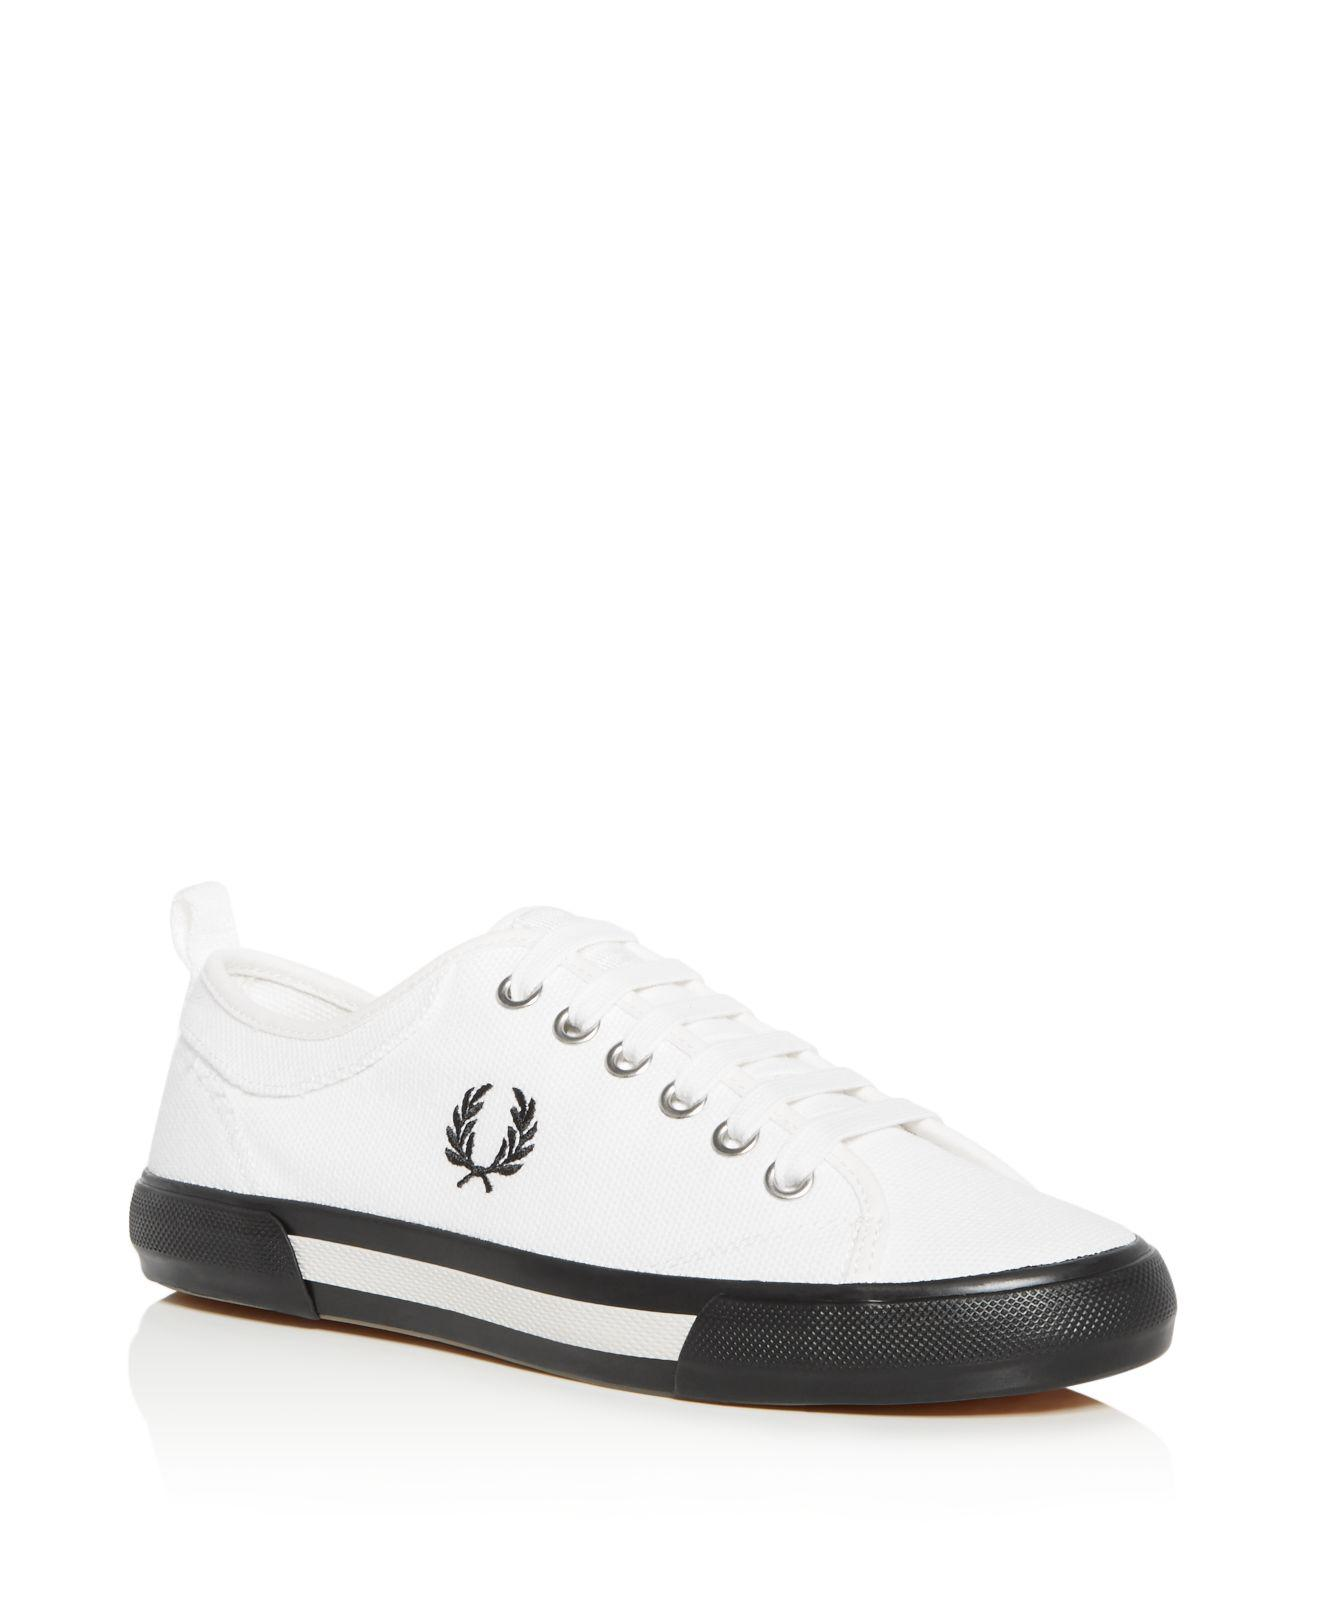 Fred Perry Men's Horton Lace Up Sneakers RrQXiCdLo7